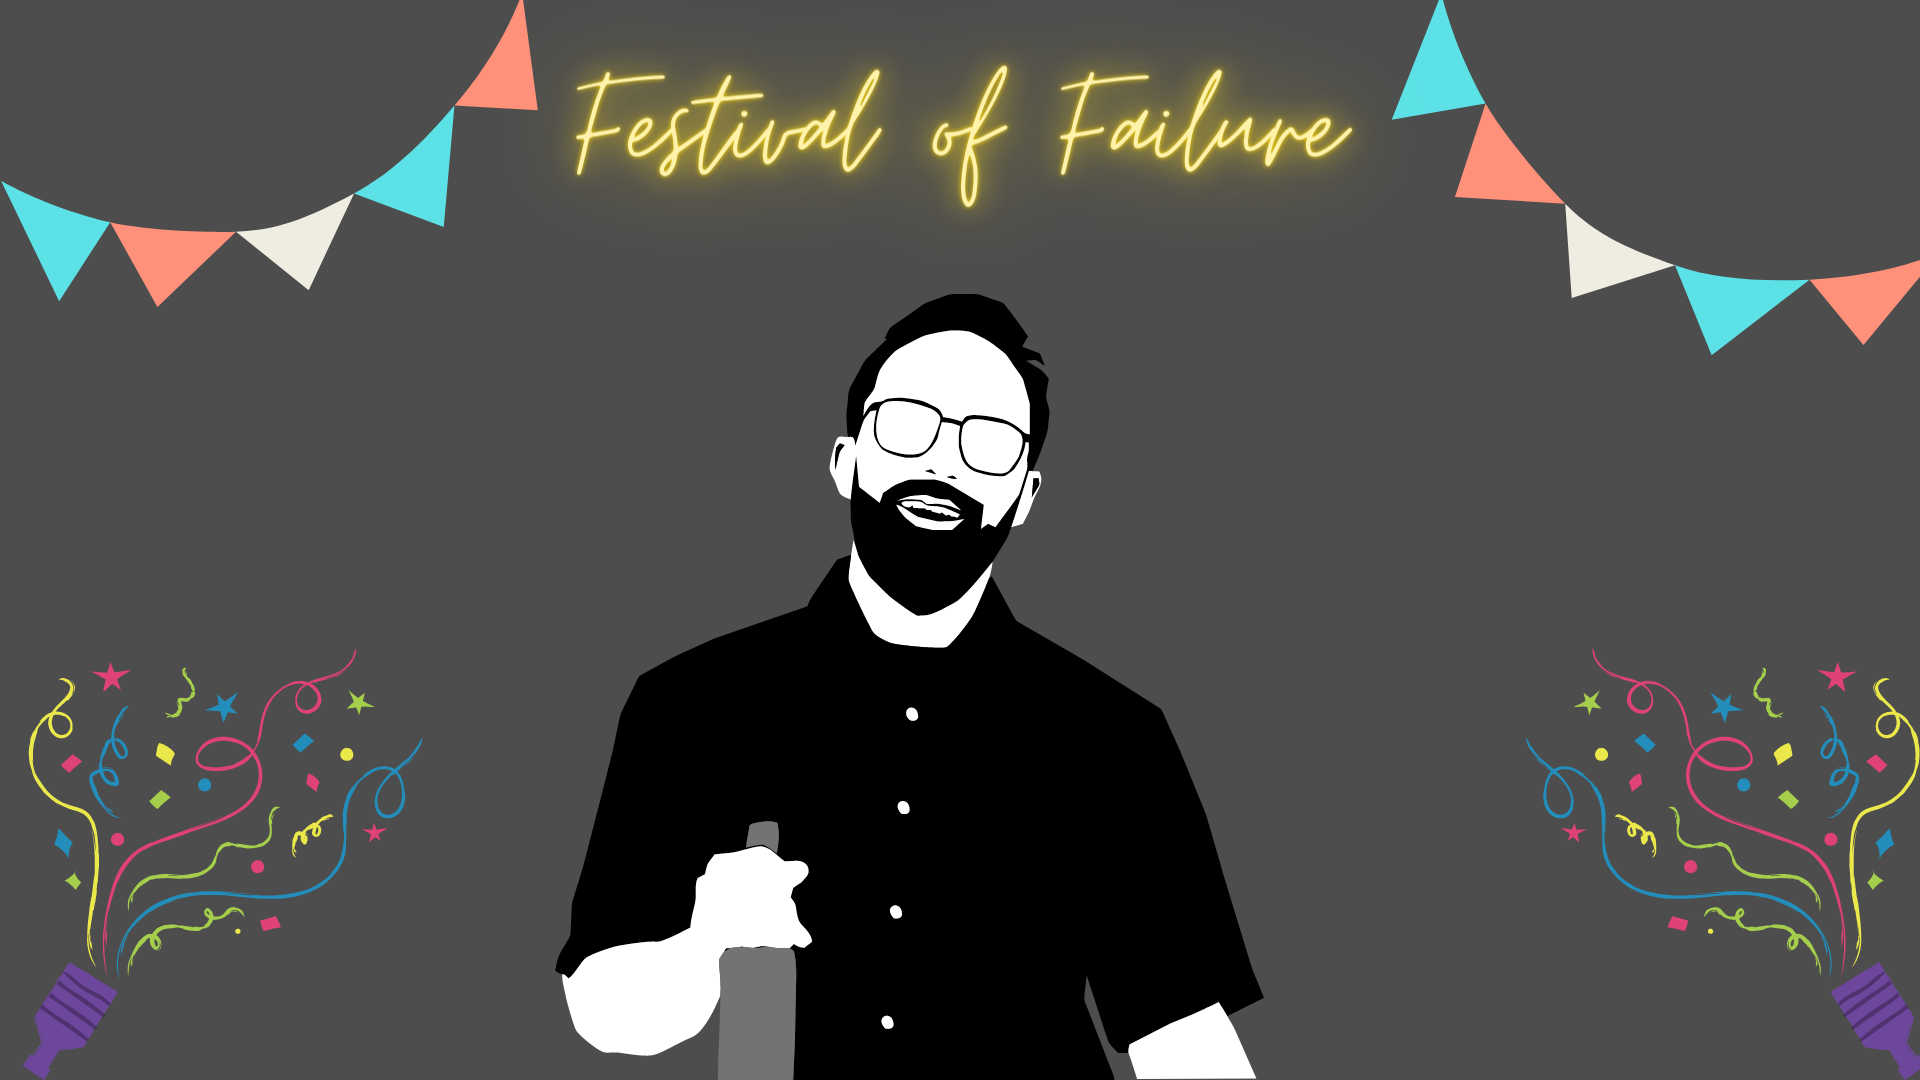 zoom background for festival of failure